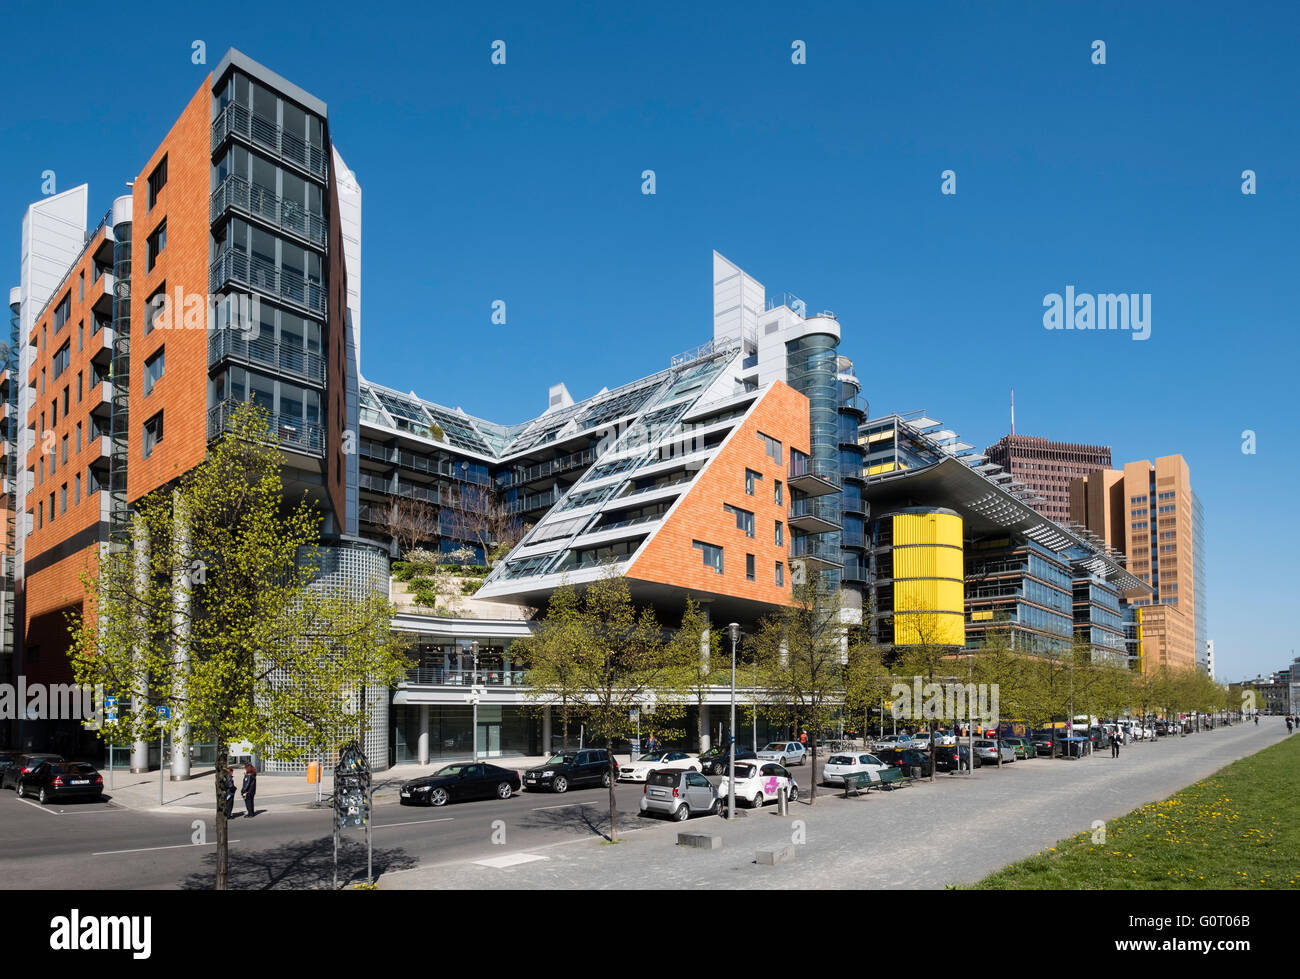 Modern architecture of apartments and offices at Daimler Chrysler Quartier at  Potsdamer Platz in Berlin Germany - Stock Image